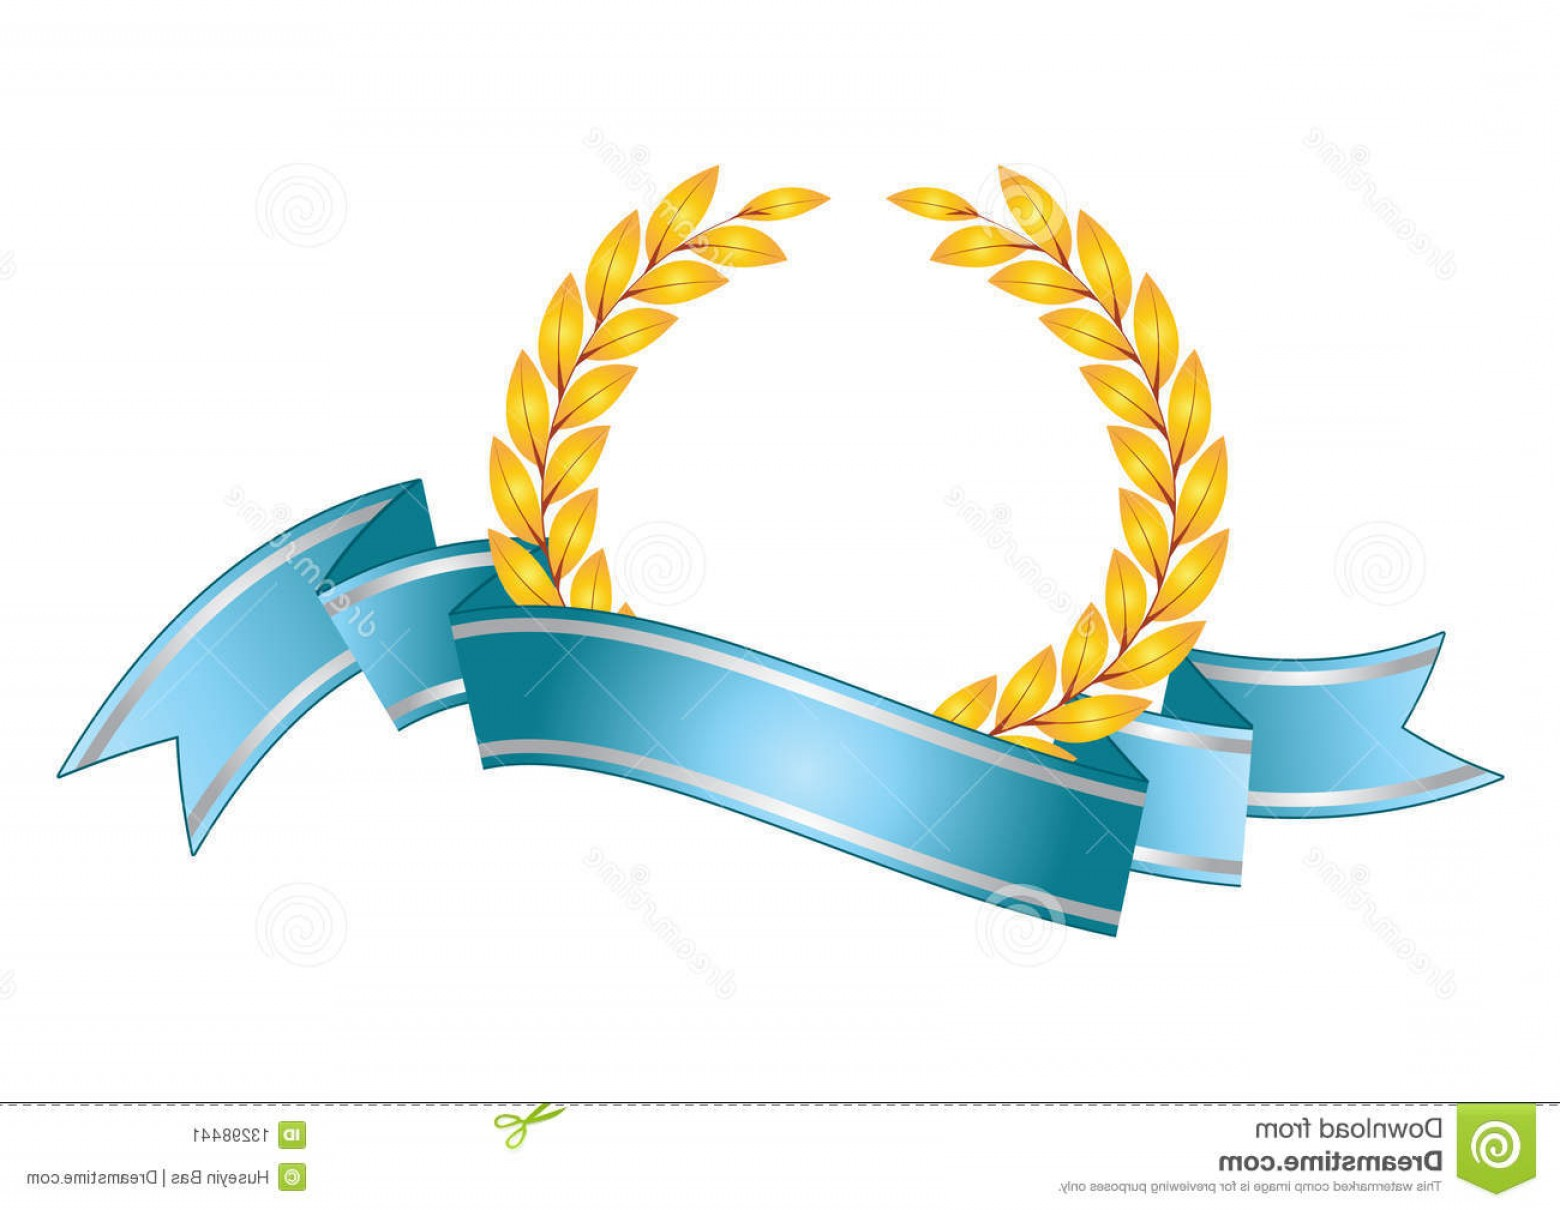 Award Vector Leaves: Stock Image Award Leaf Symbol Image